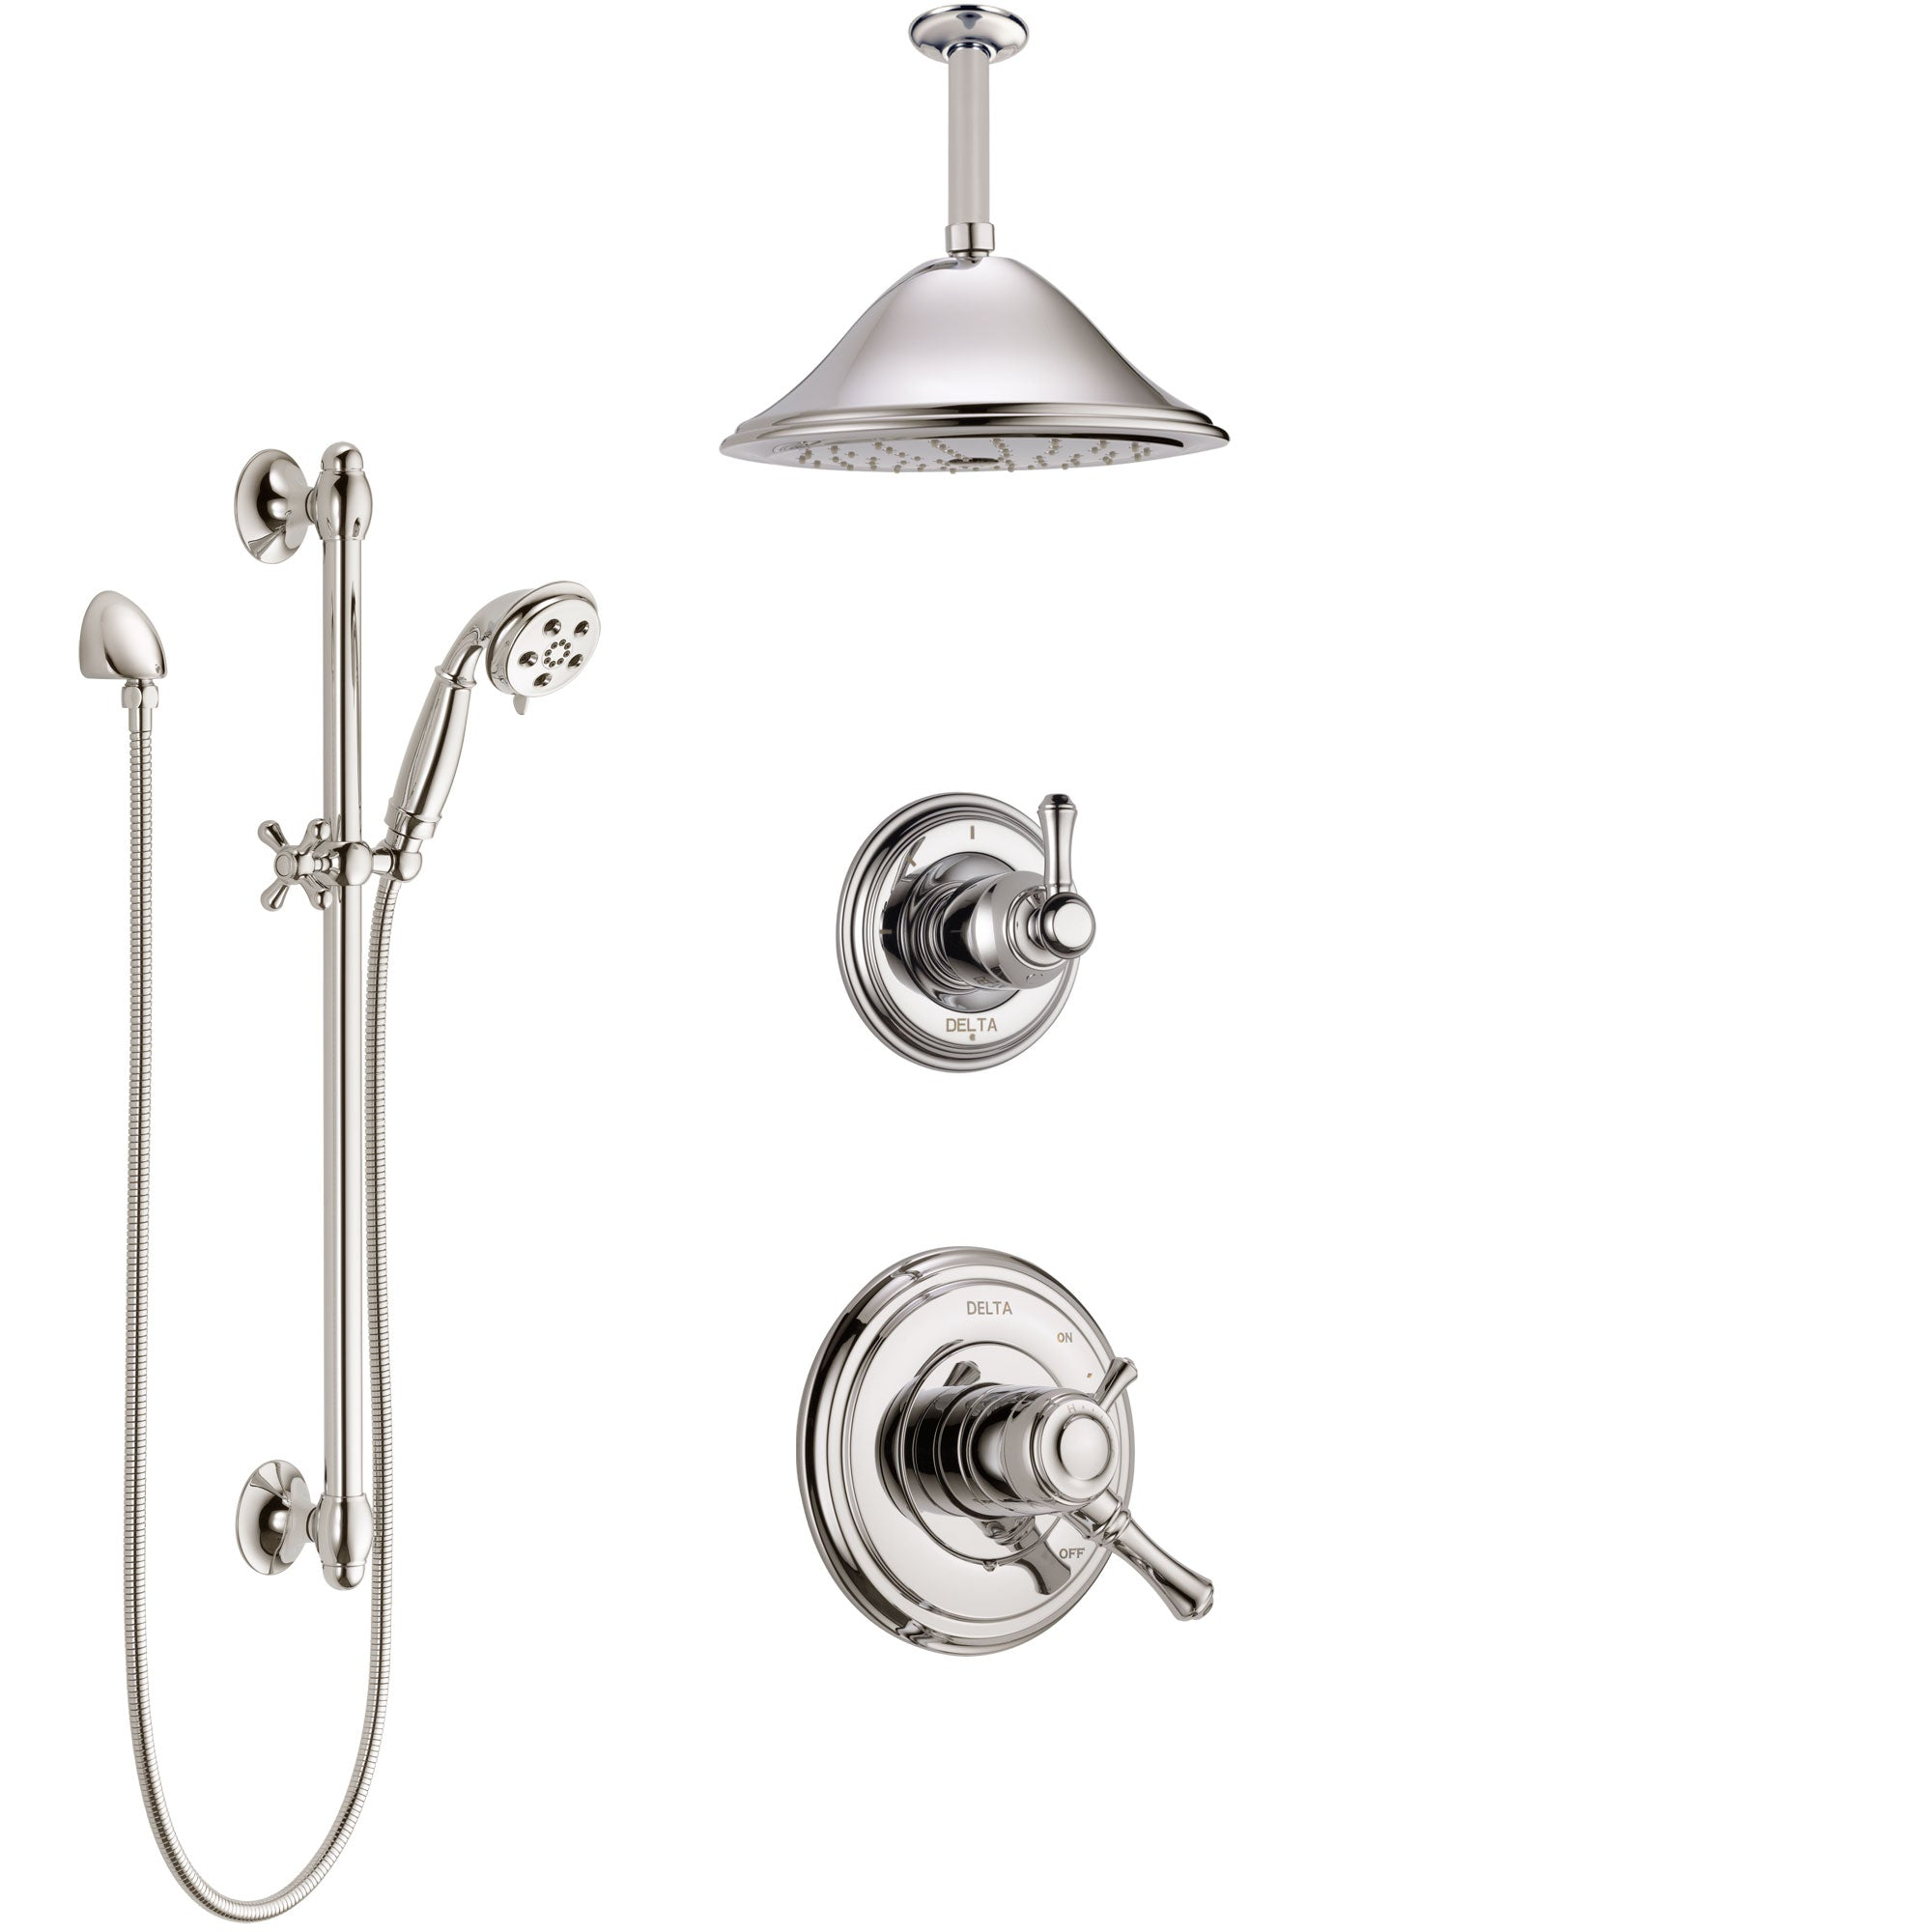 Delta Cassidy Polished Nickel Shower System with Dual Control Handle, Diverter, Ceiling Mount Showerhead, and Hand Shower with Slidebar SS1797PN3